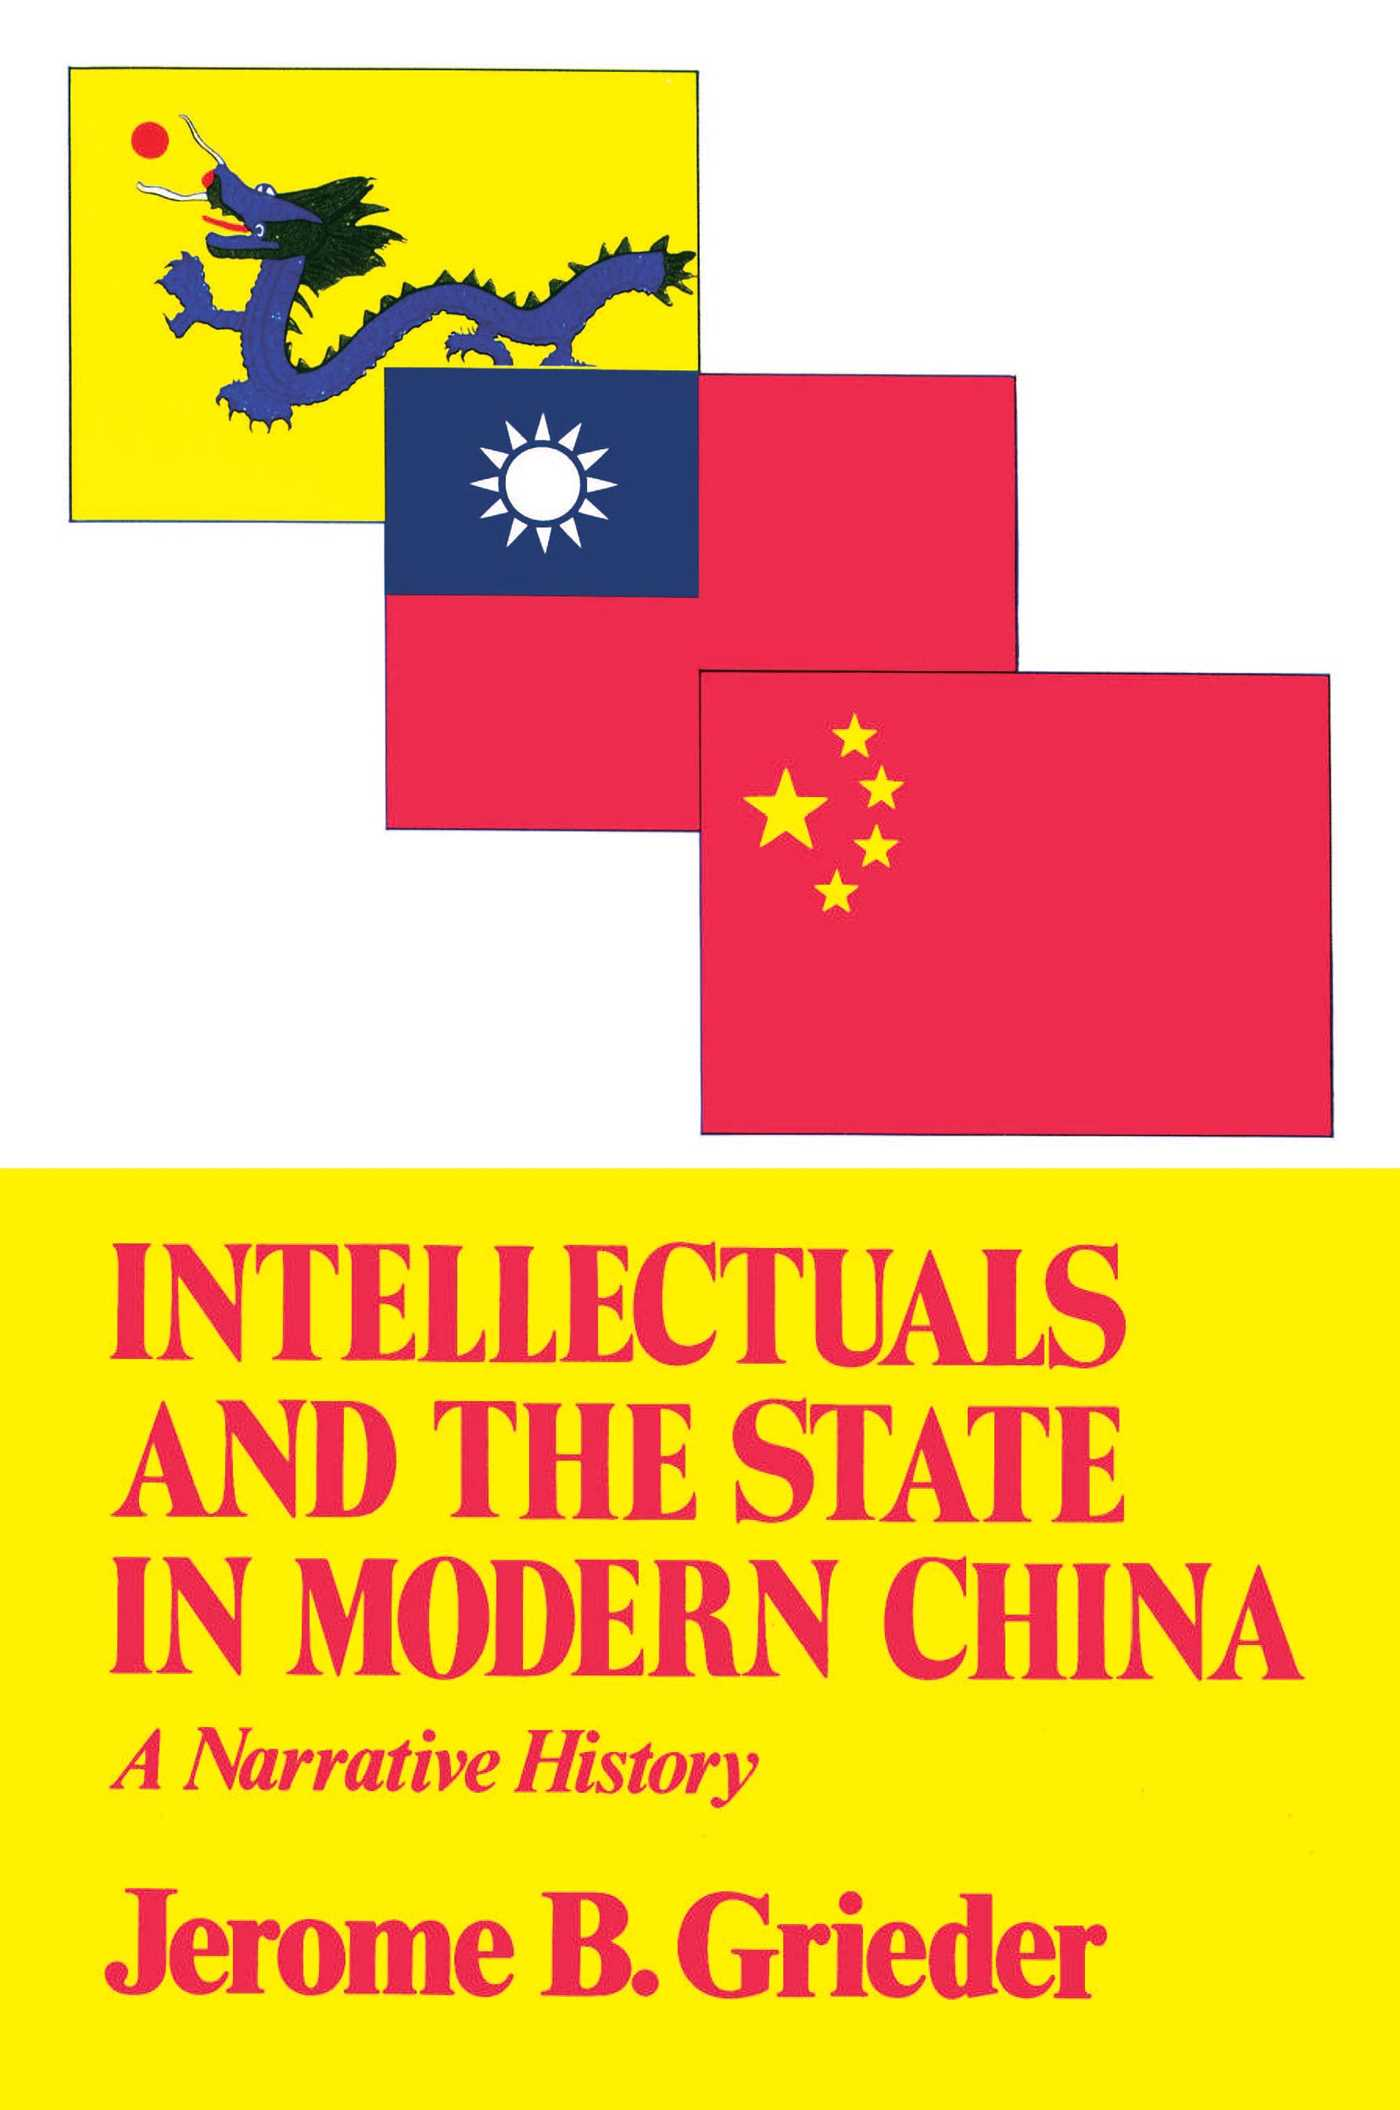 Intellectuals and the state in modern china 9780029126707 hr